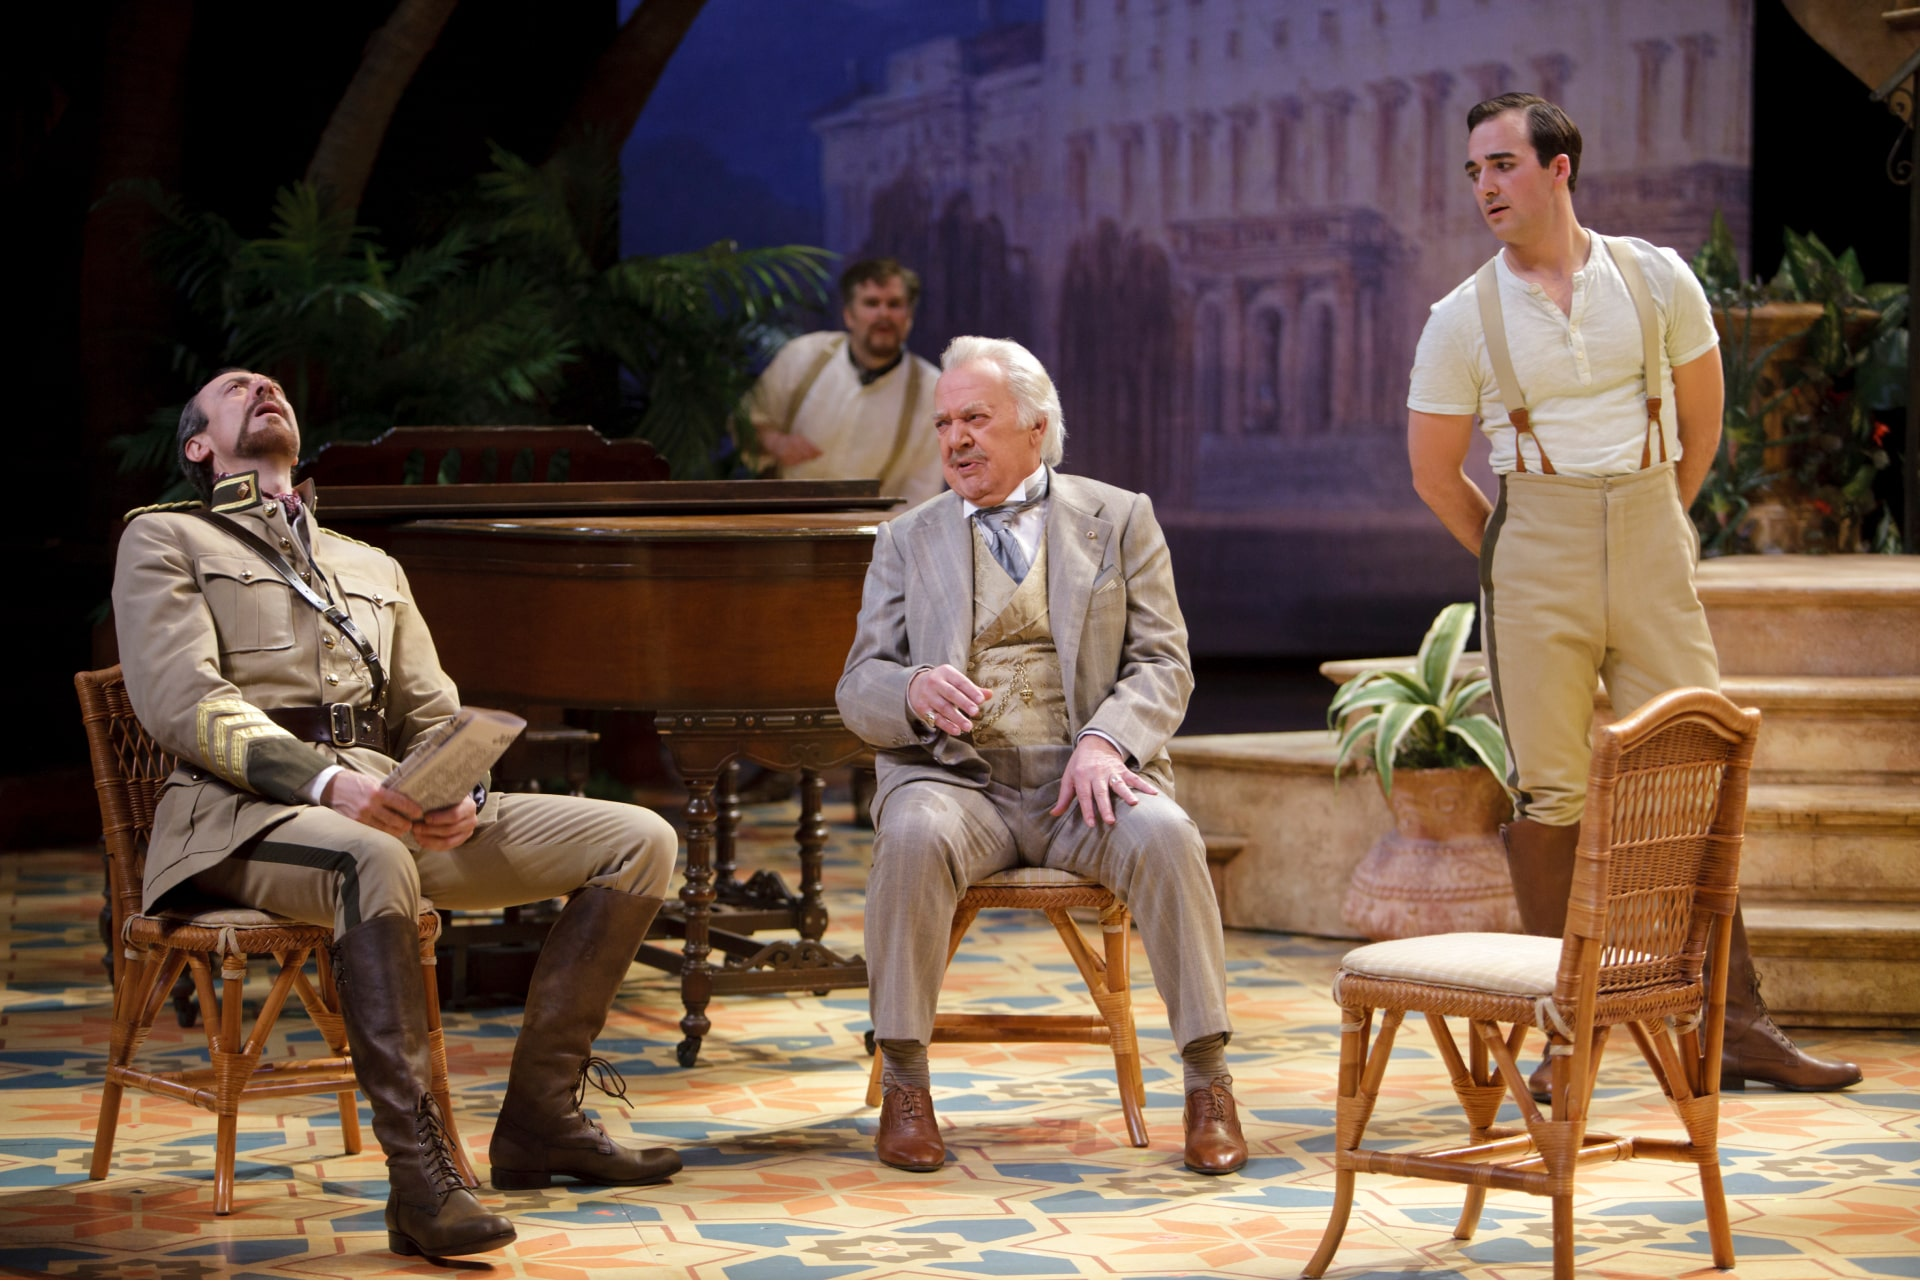 Two men sit on wicker chairs watched by two other men.